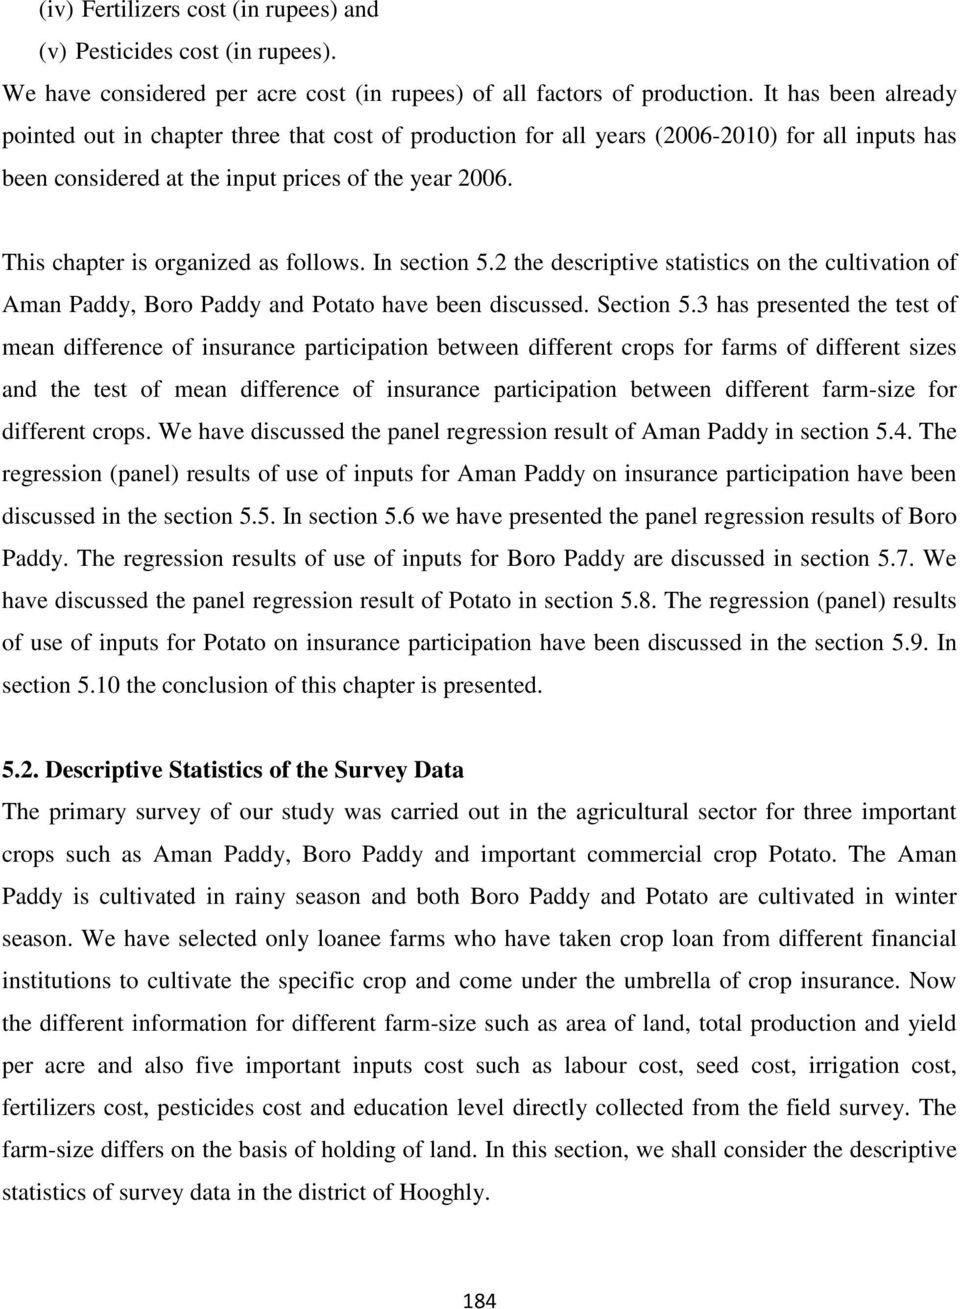 This chapter is organized as follows. In section 5.2 the descriptive statistics on the cultivation of Aman Paddy, Boro Paddy and Potato have been discussed. Section 5.